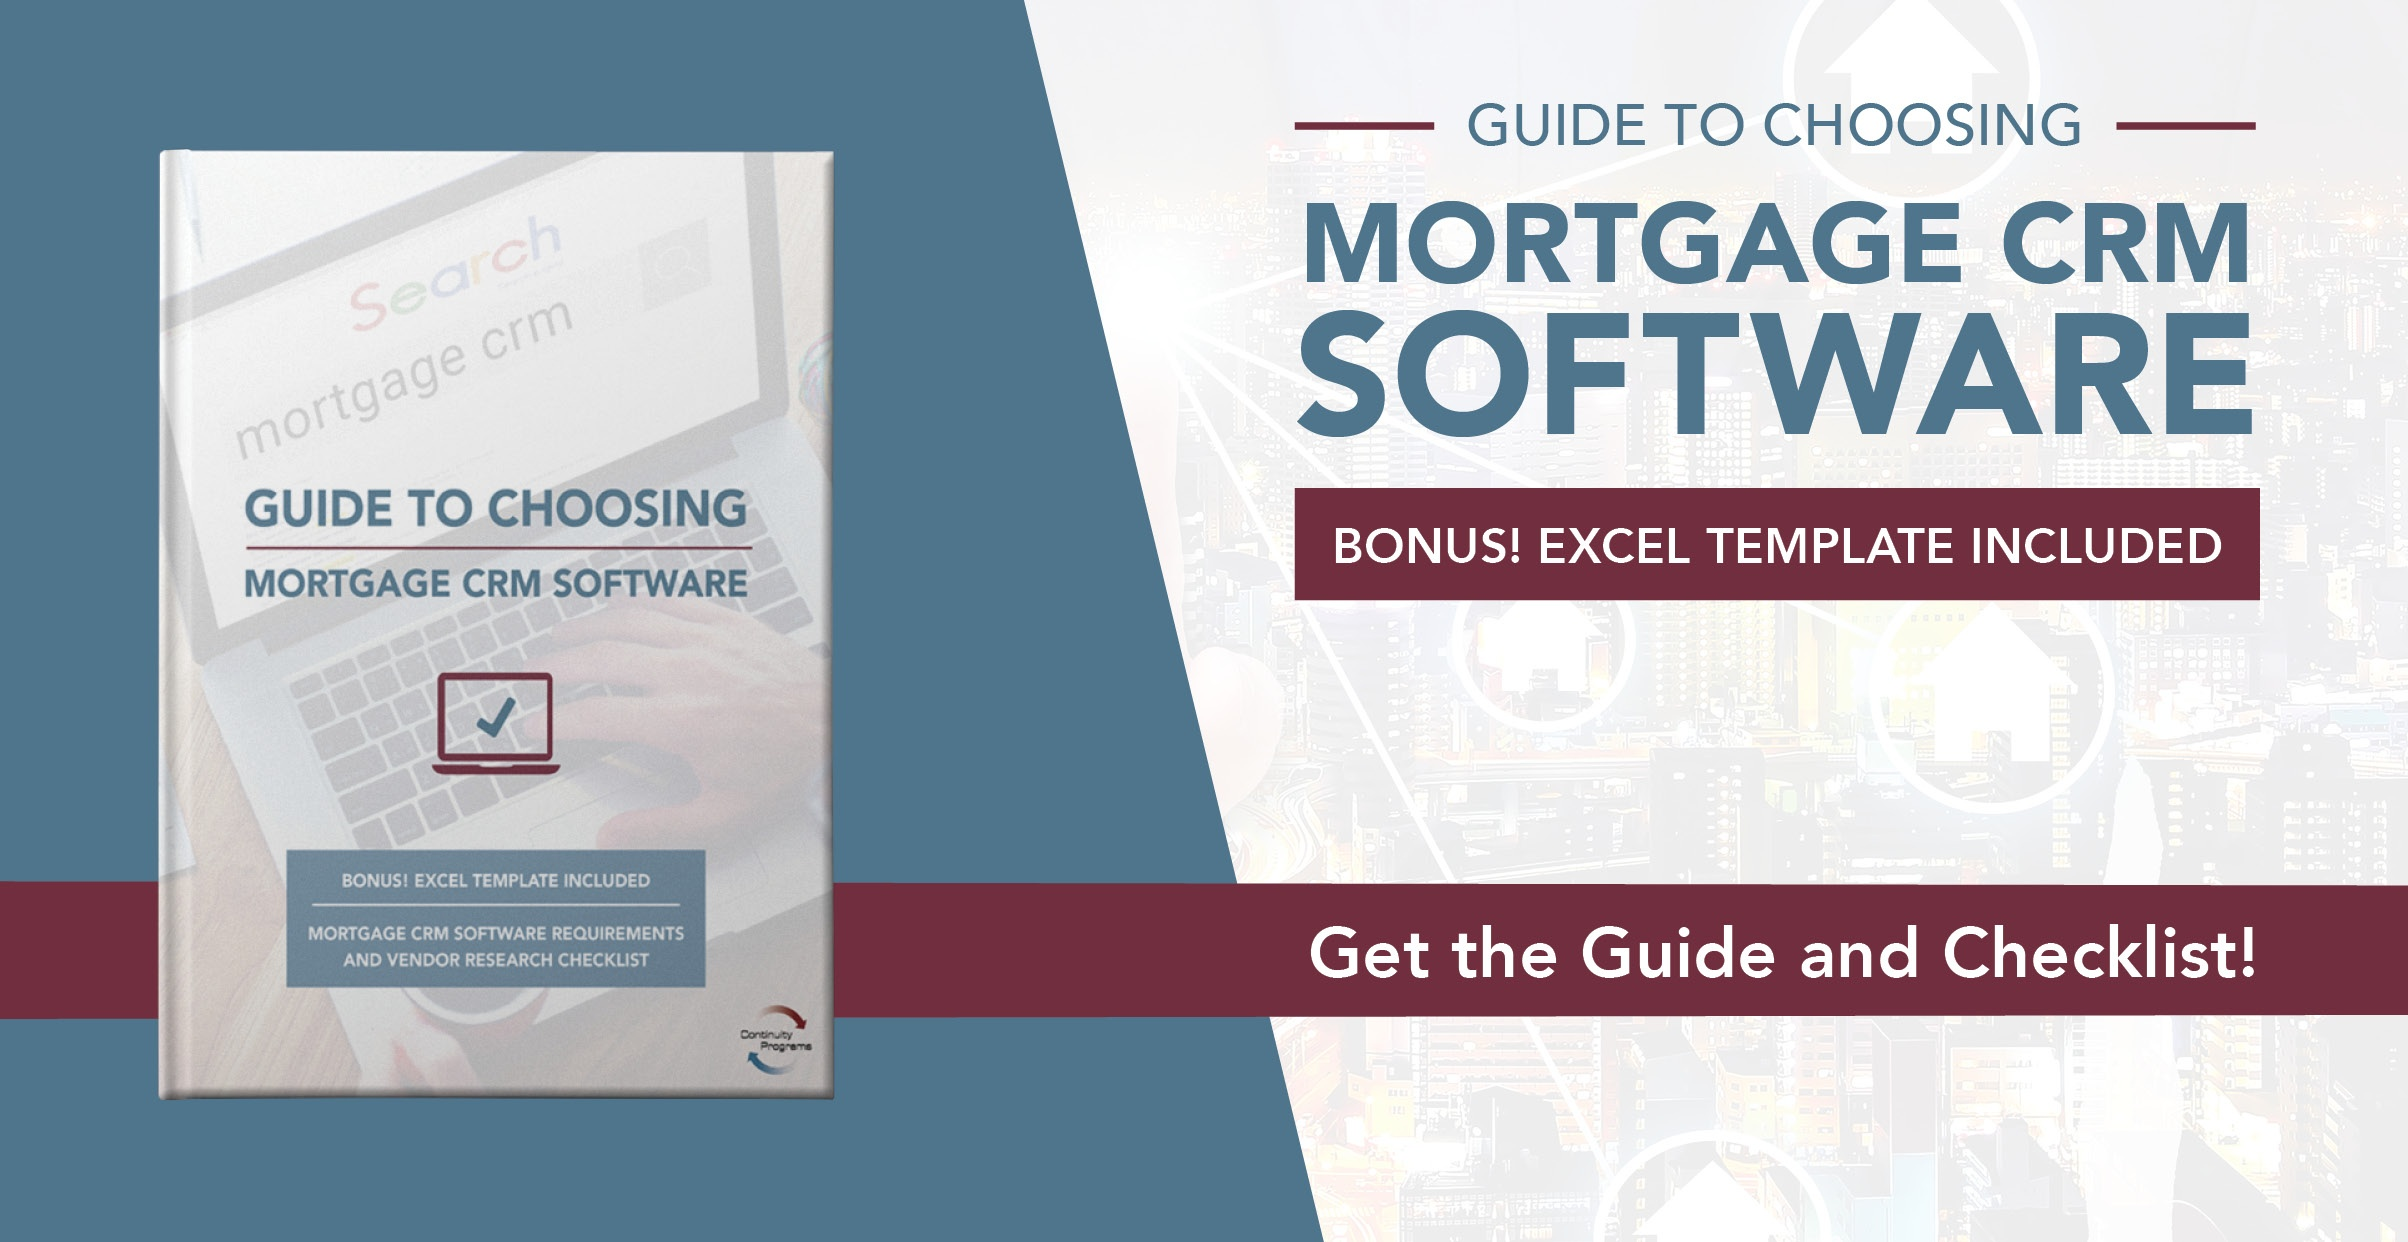 Guide To Choosing Mortgage CRM Software